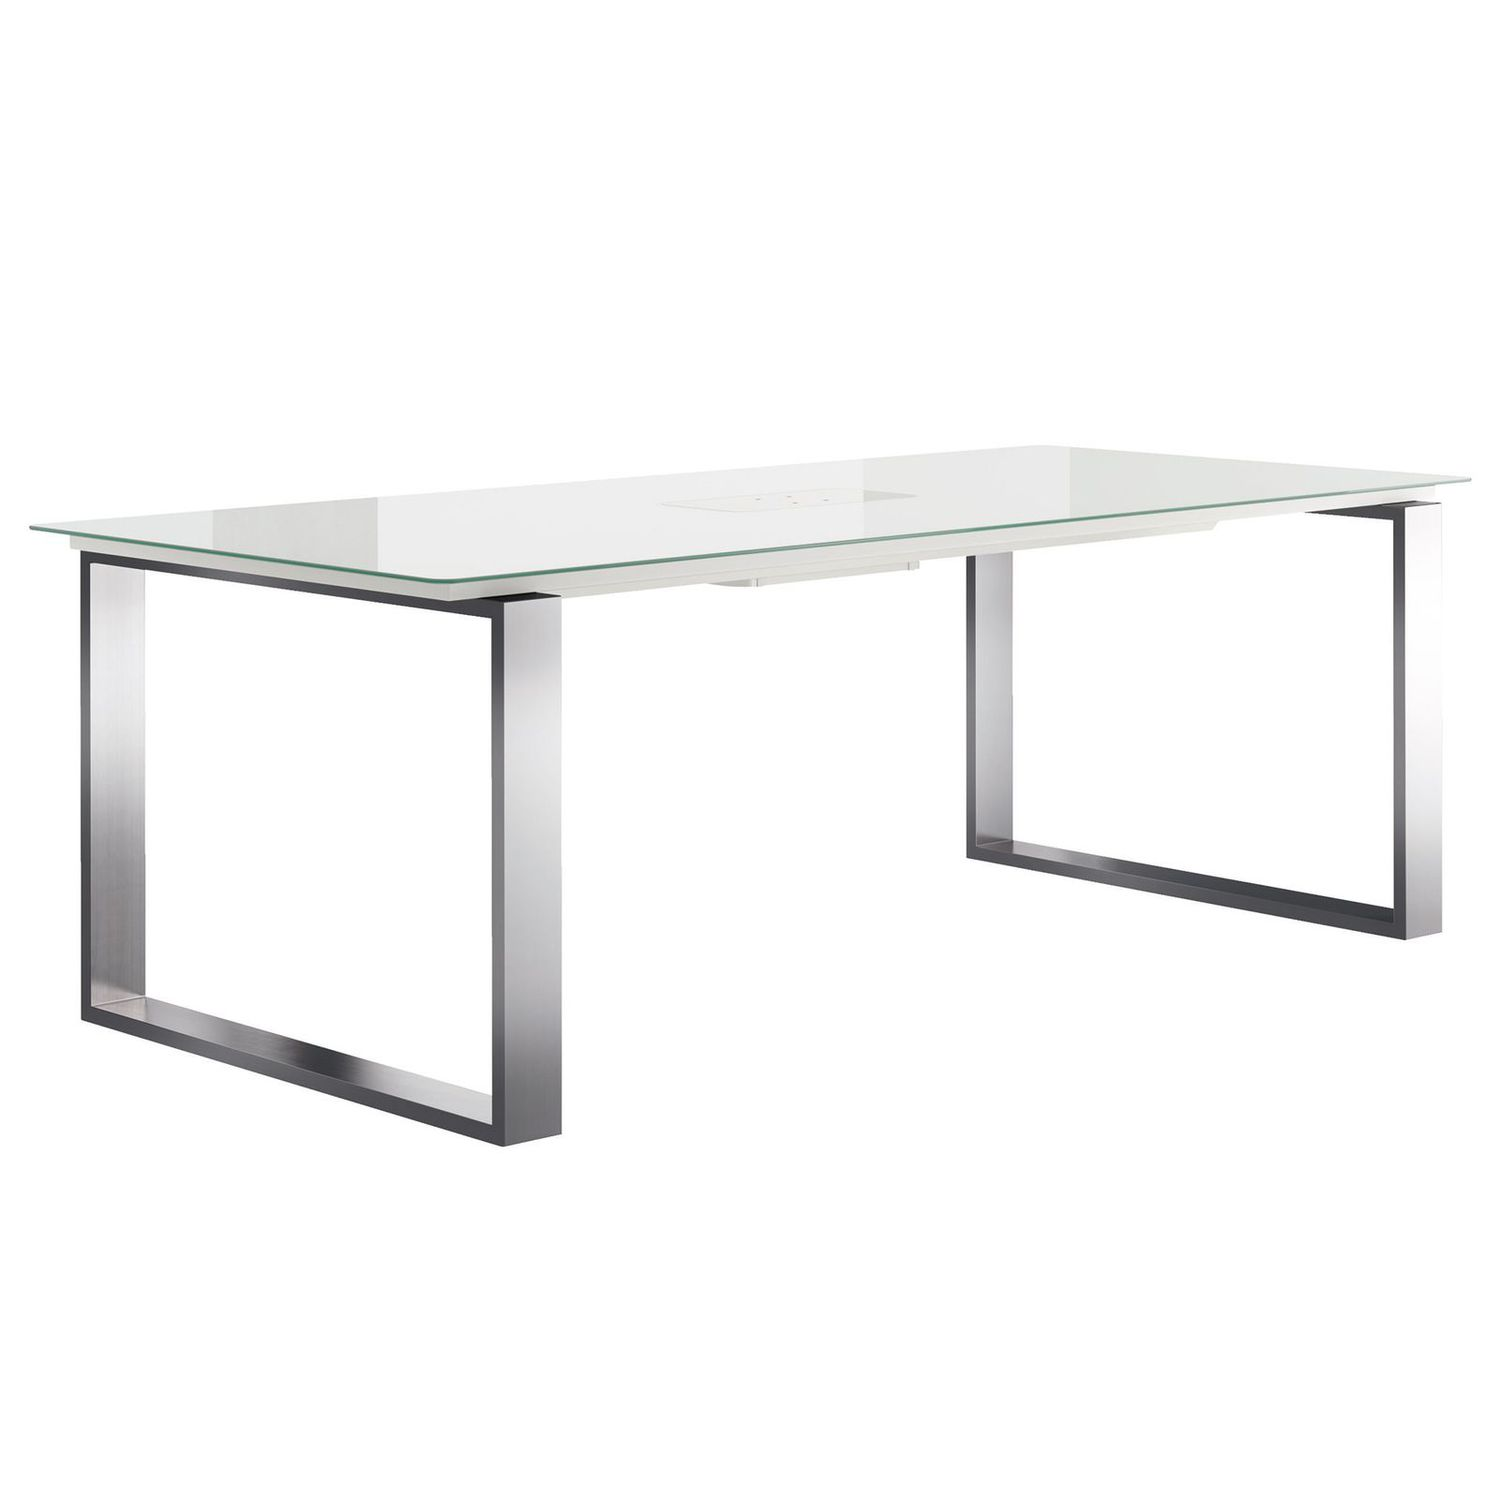 Contemporary dining table lacquered glass powder coated steel